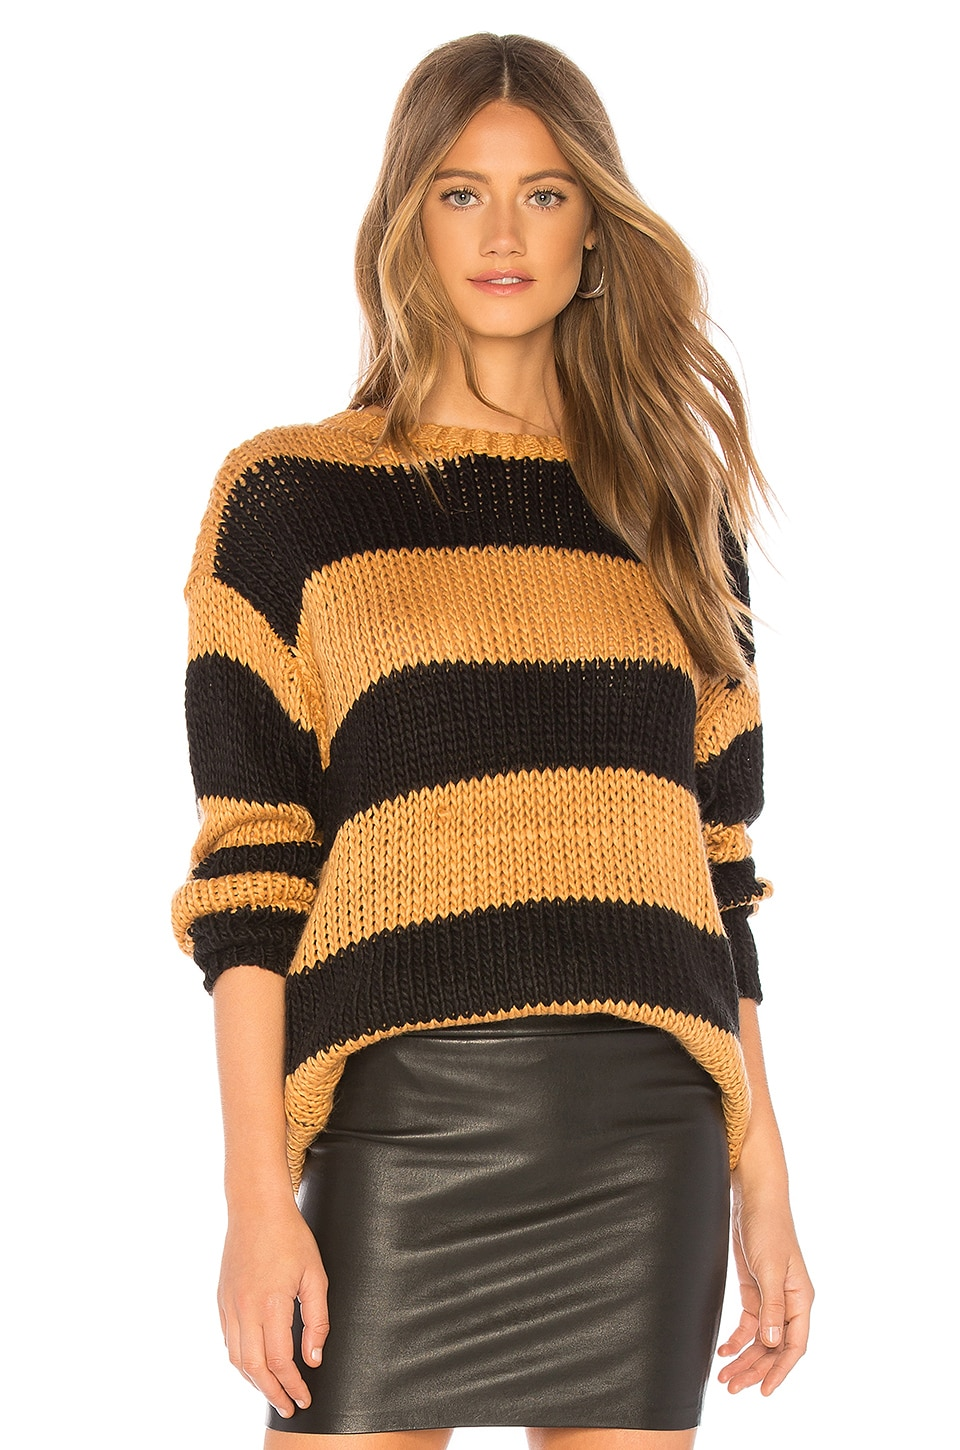 Lovers + Friends The Amber Sweater in Camel & Black Stripe